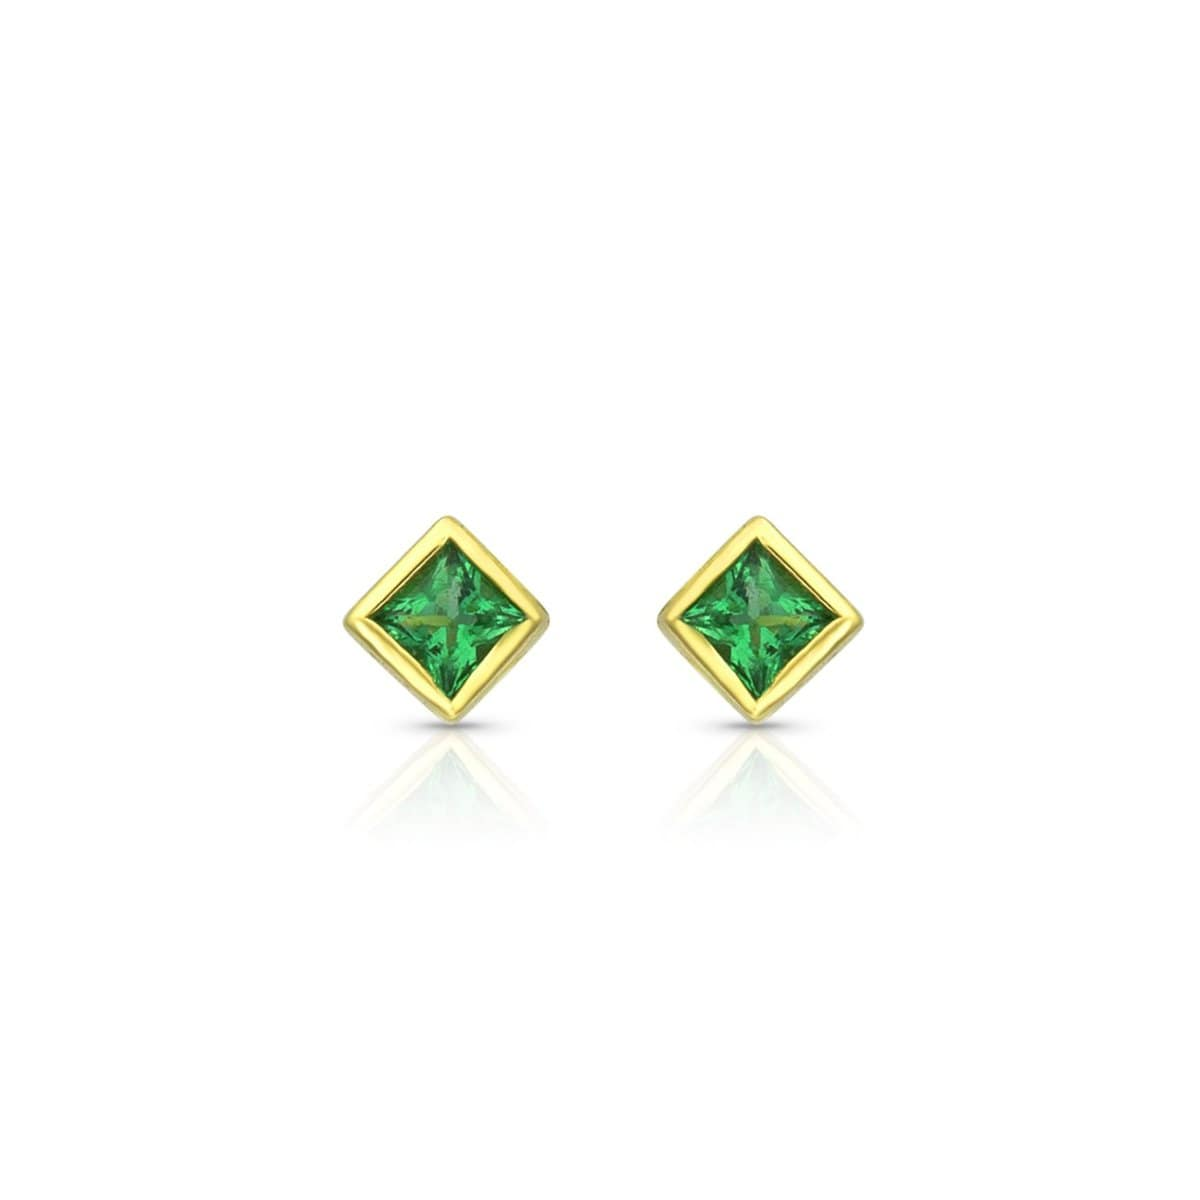 Square Cut Emerald studs